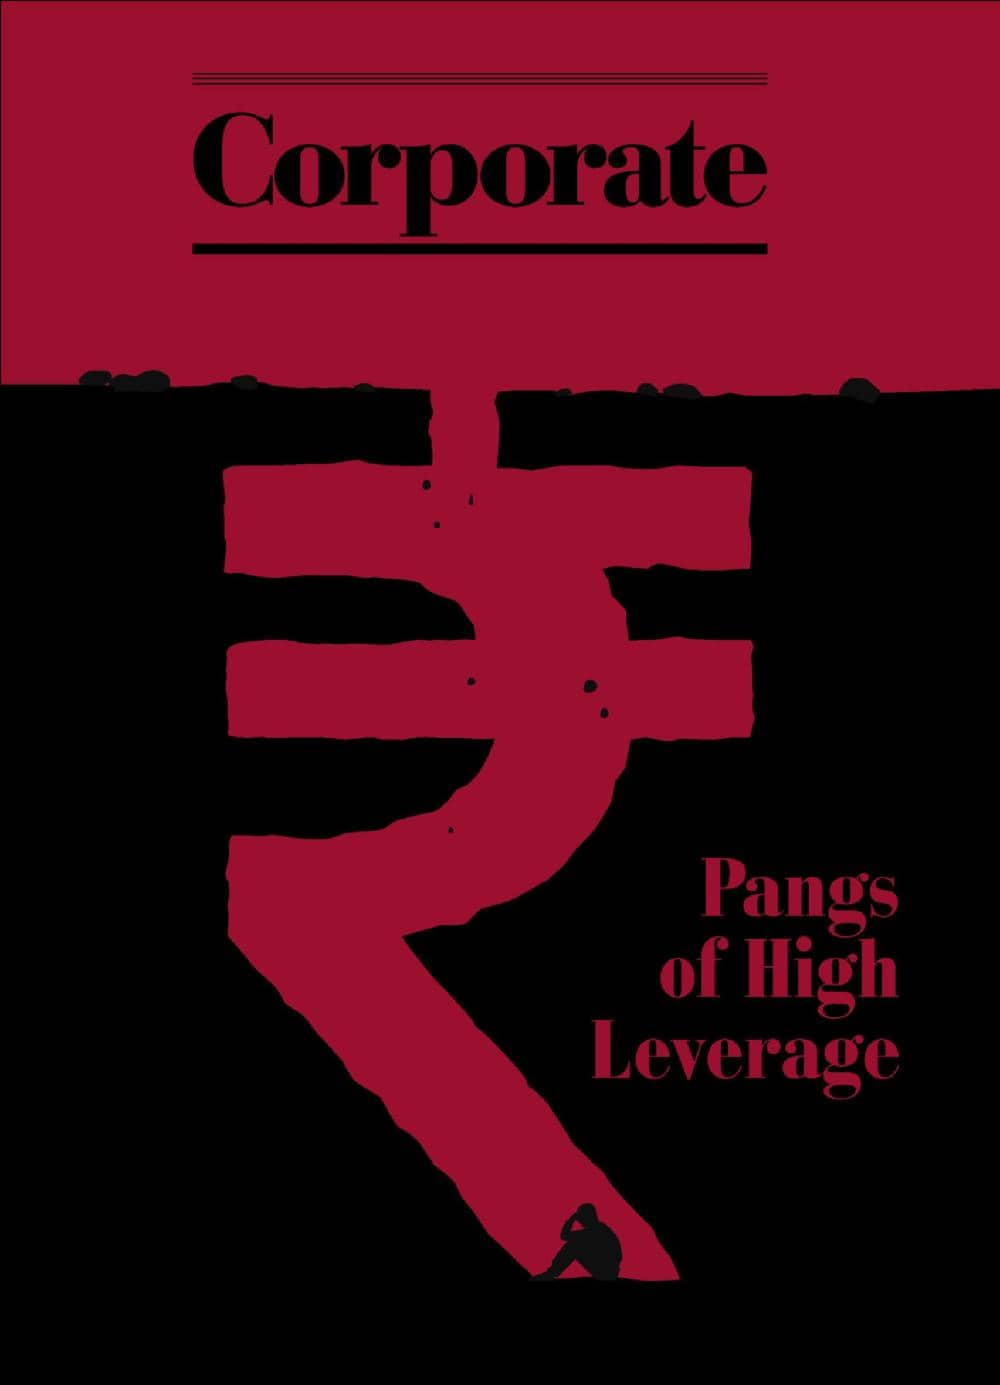 Corporate: Pangs of High Leverage